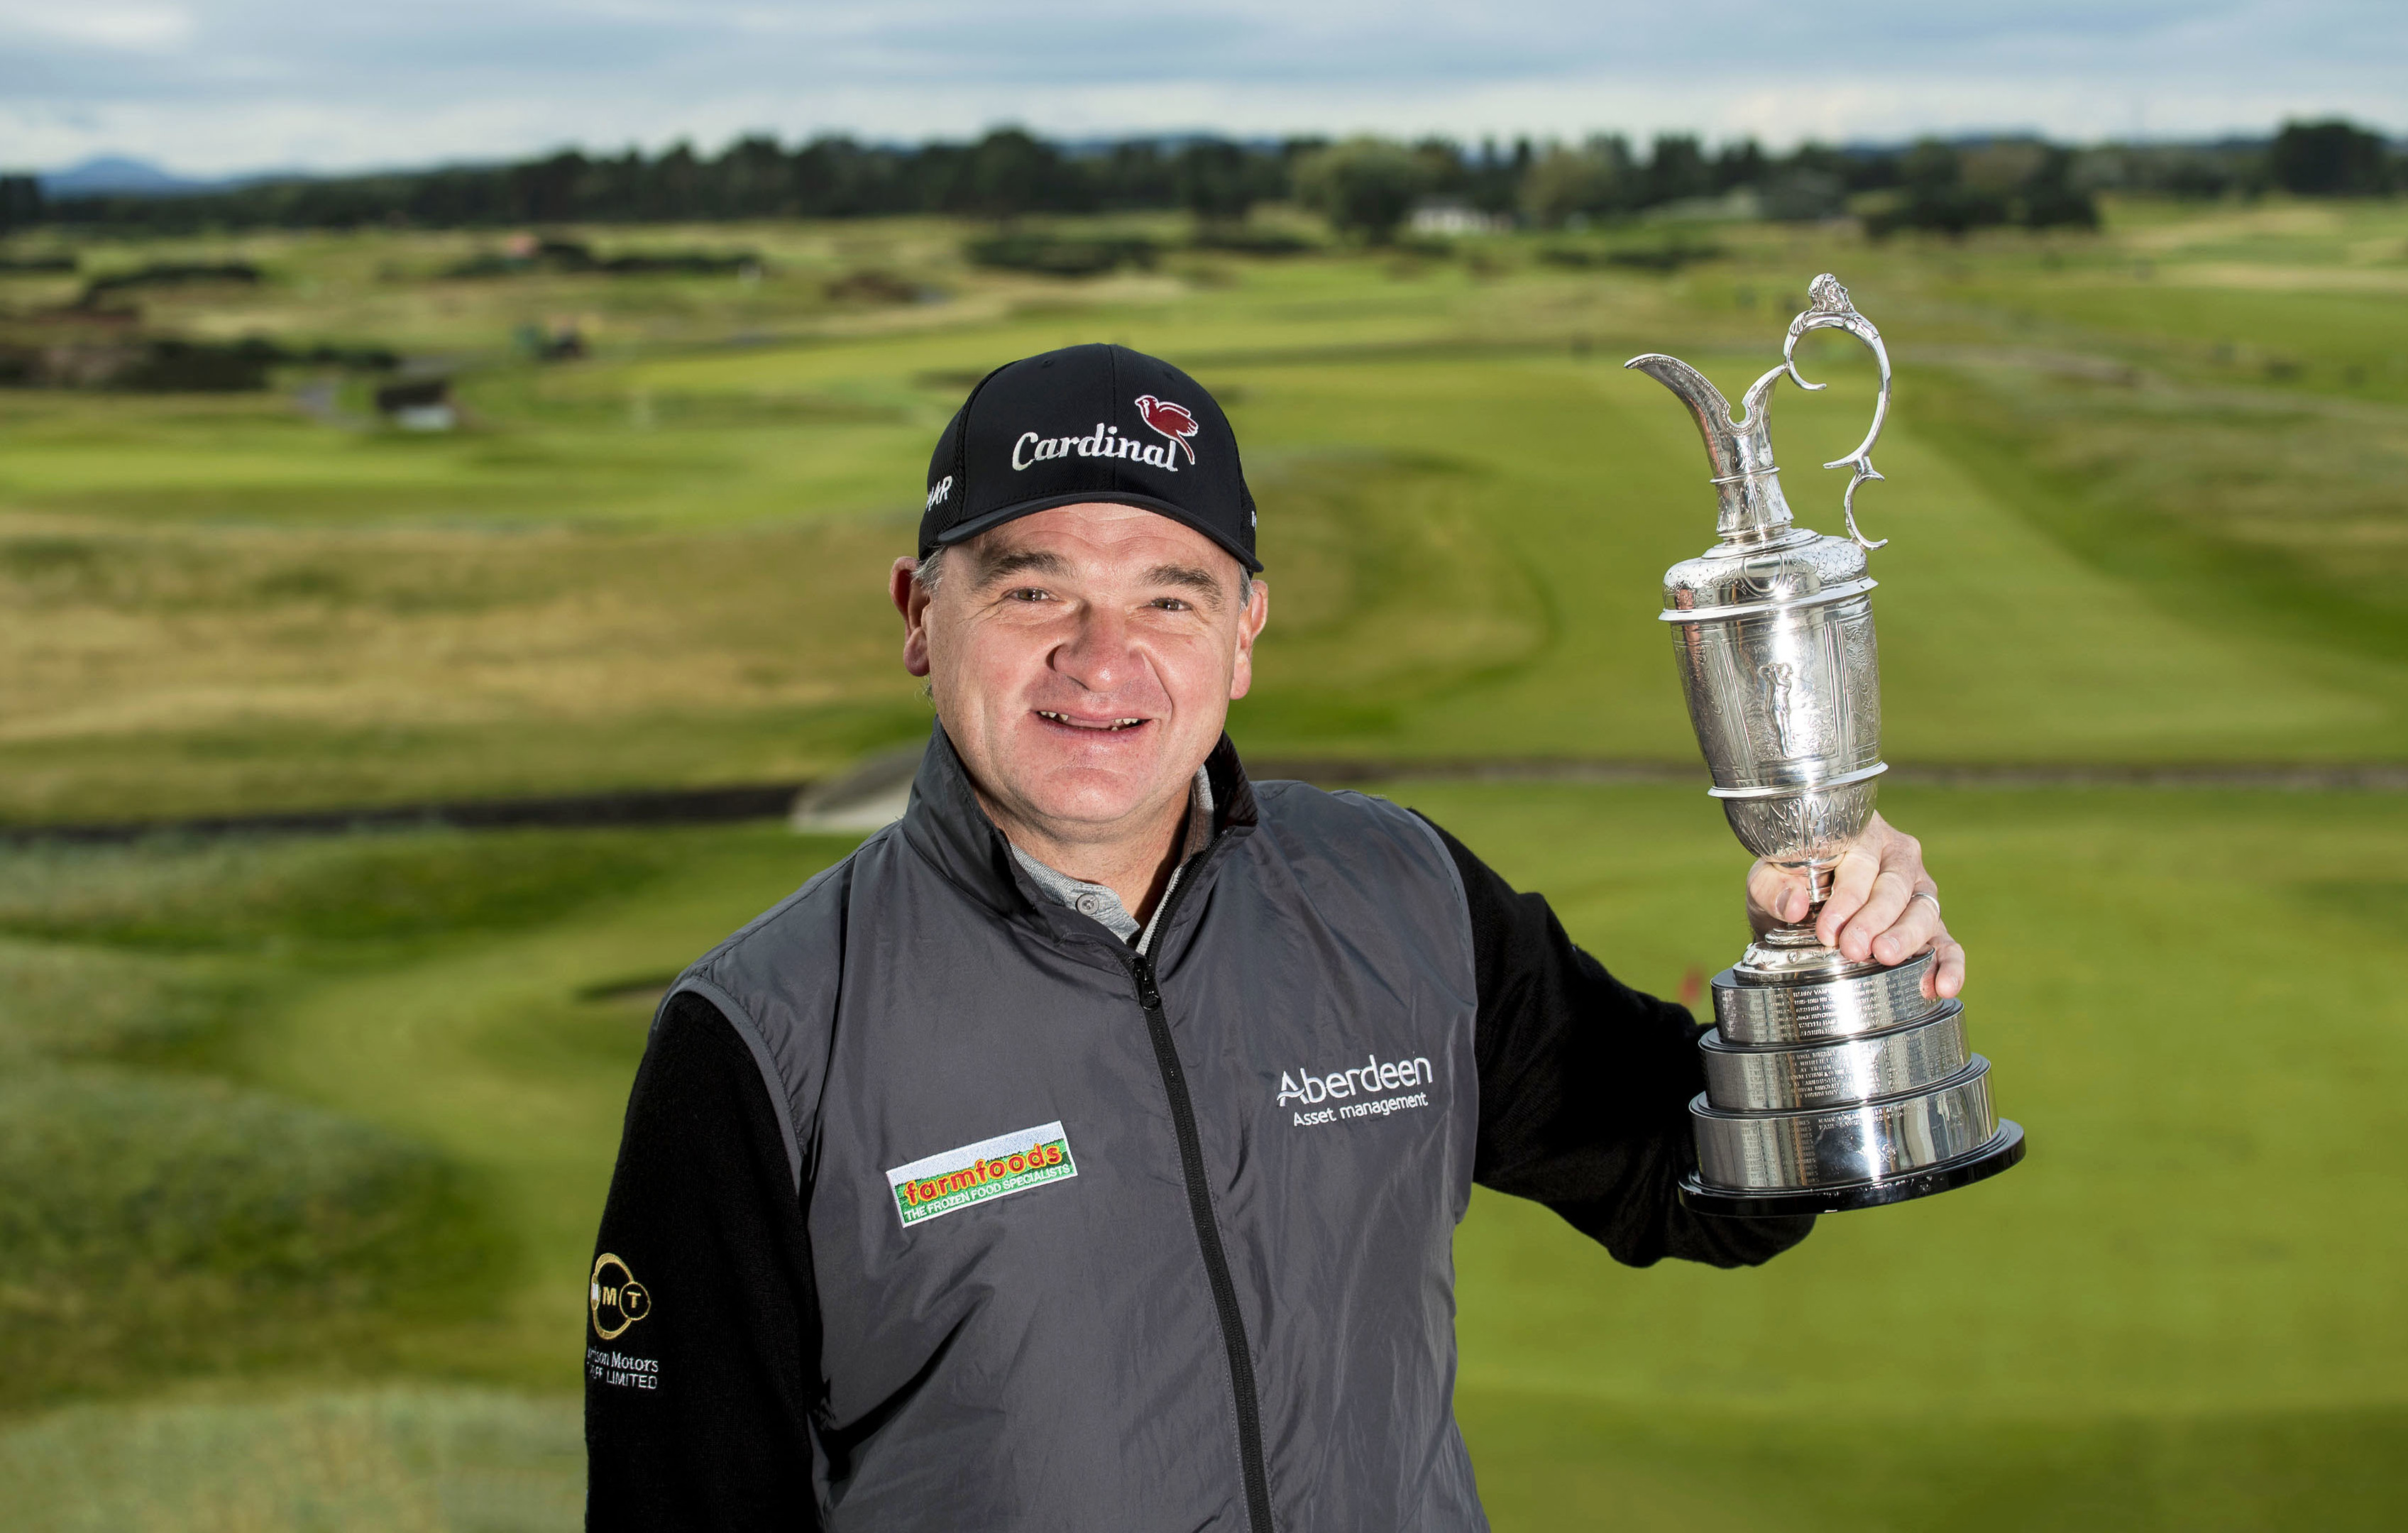 Paul Lawrie with the Claret Jug as he returns to the scene of his victory in 1999.